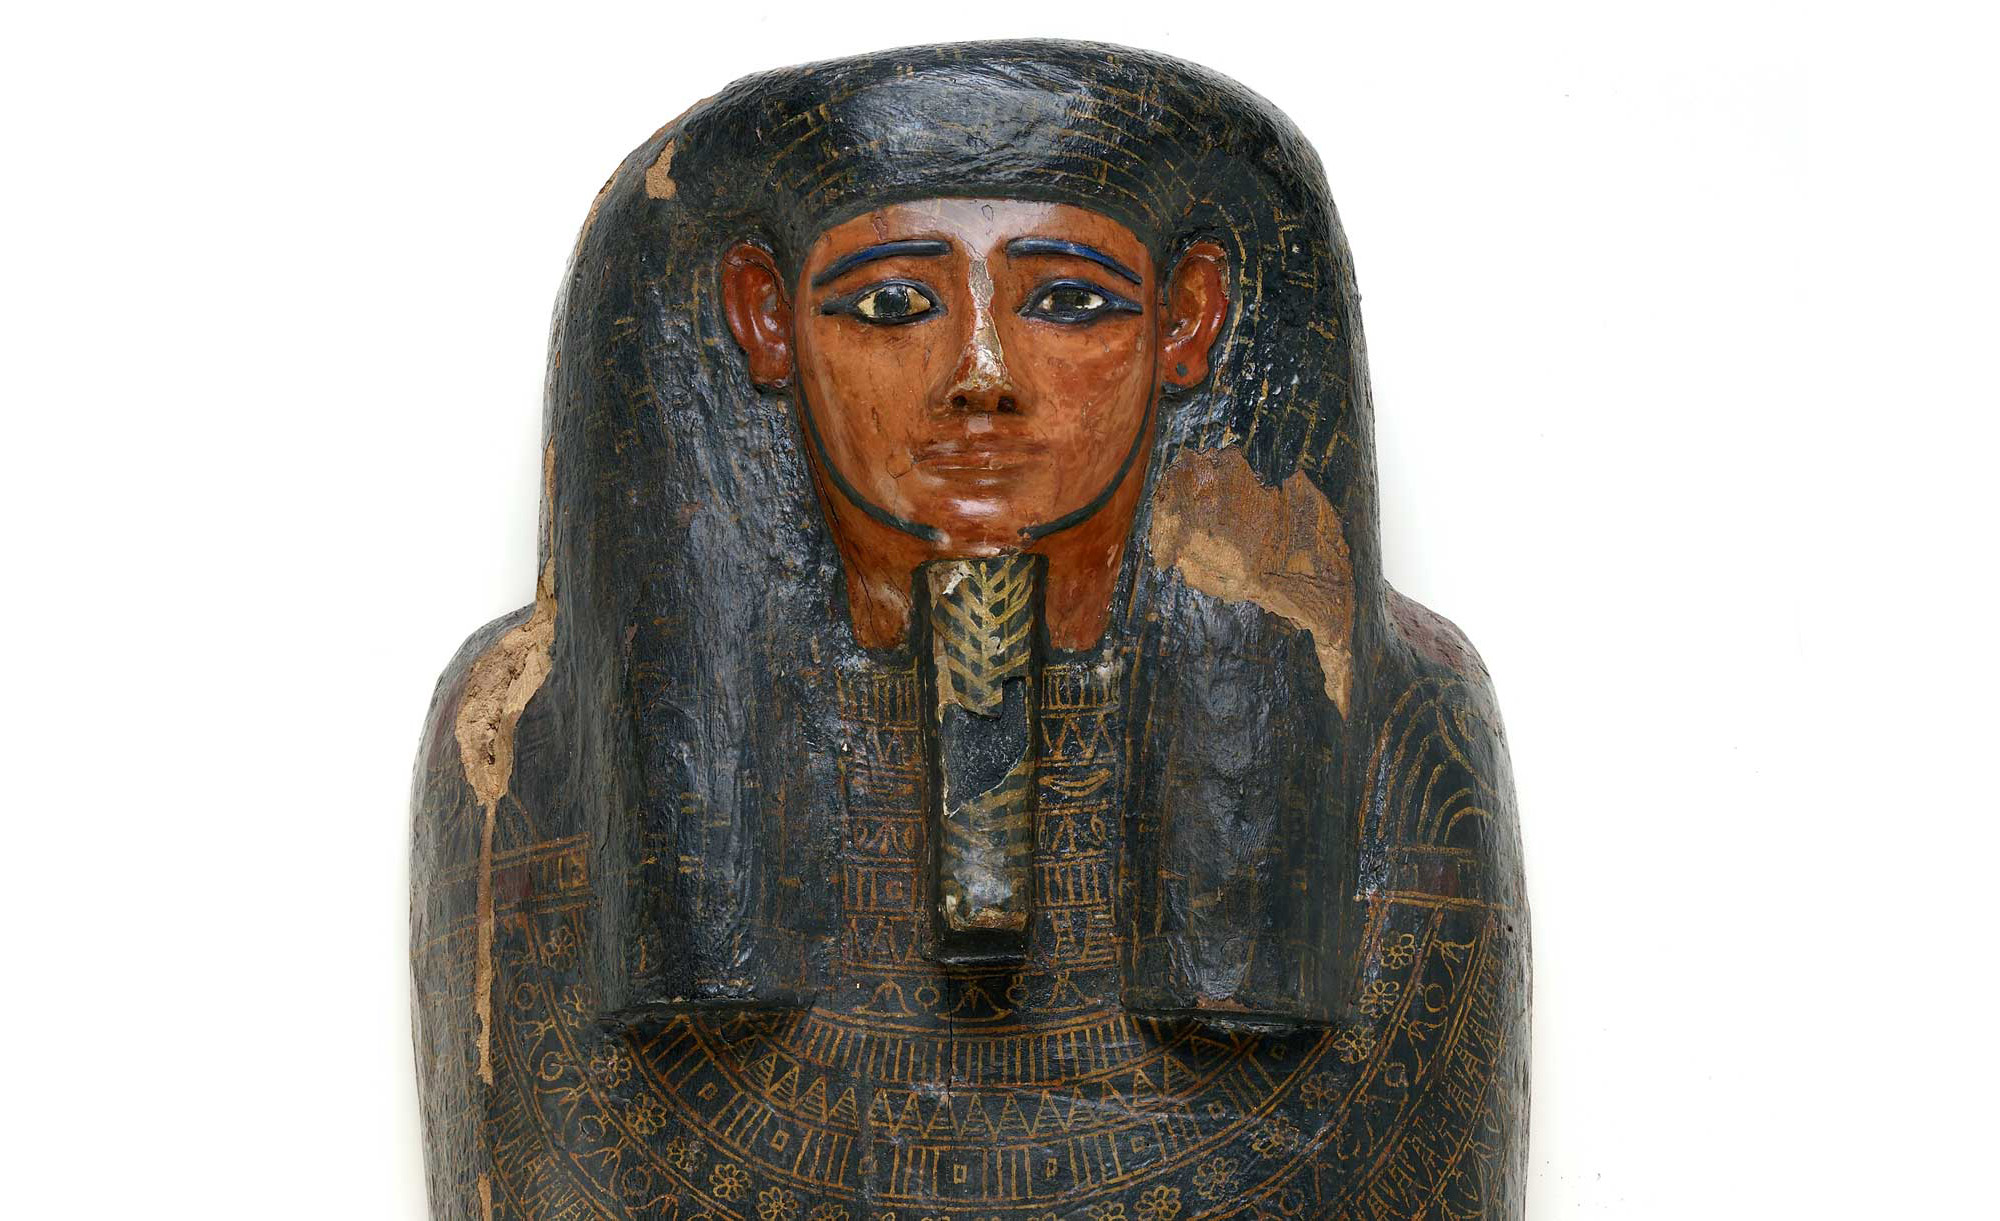 Coffin of Irethorrou, Egyptian, Akhmim, ca. 500 BC